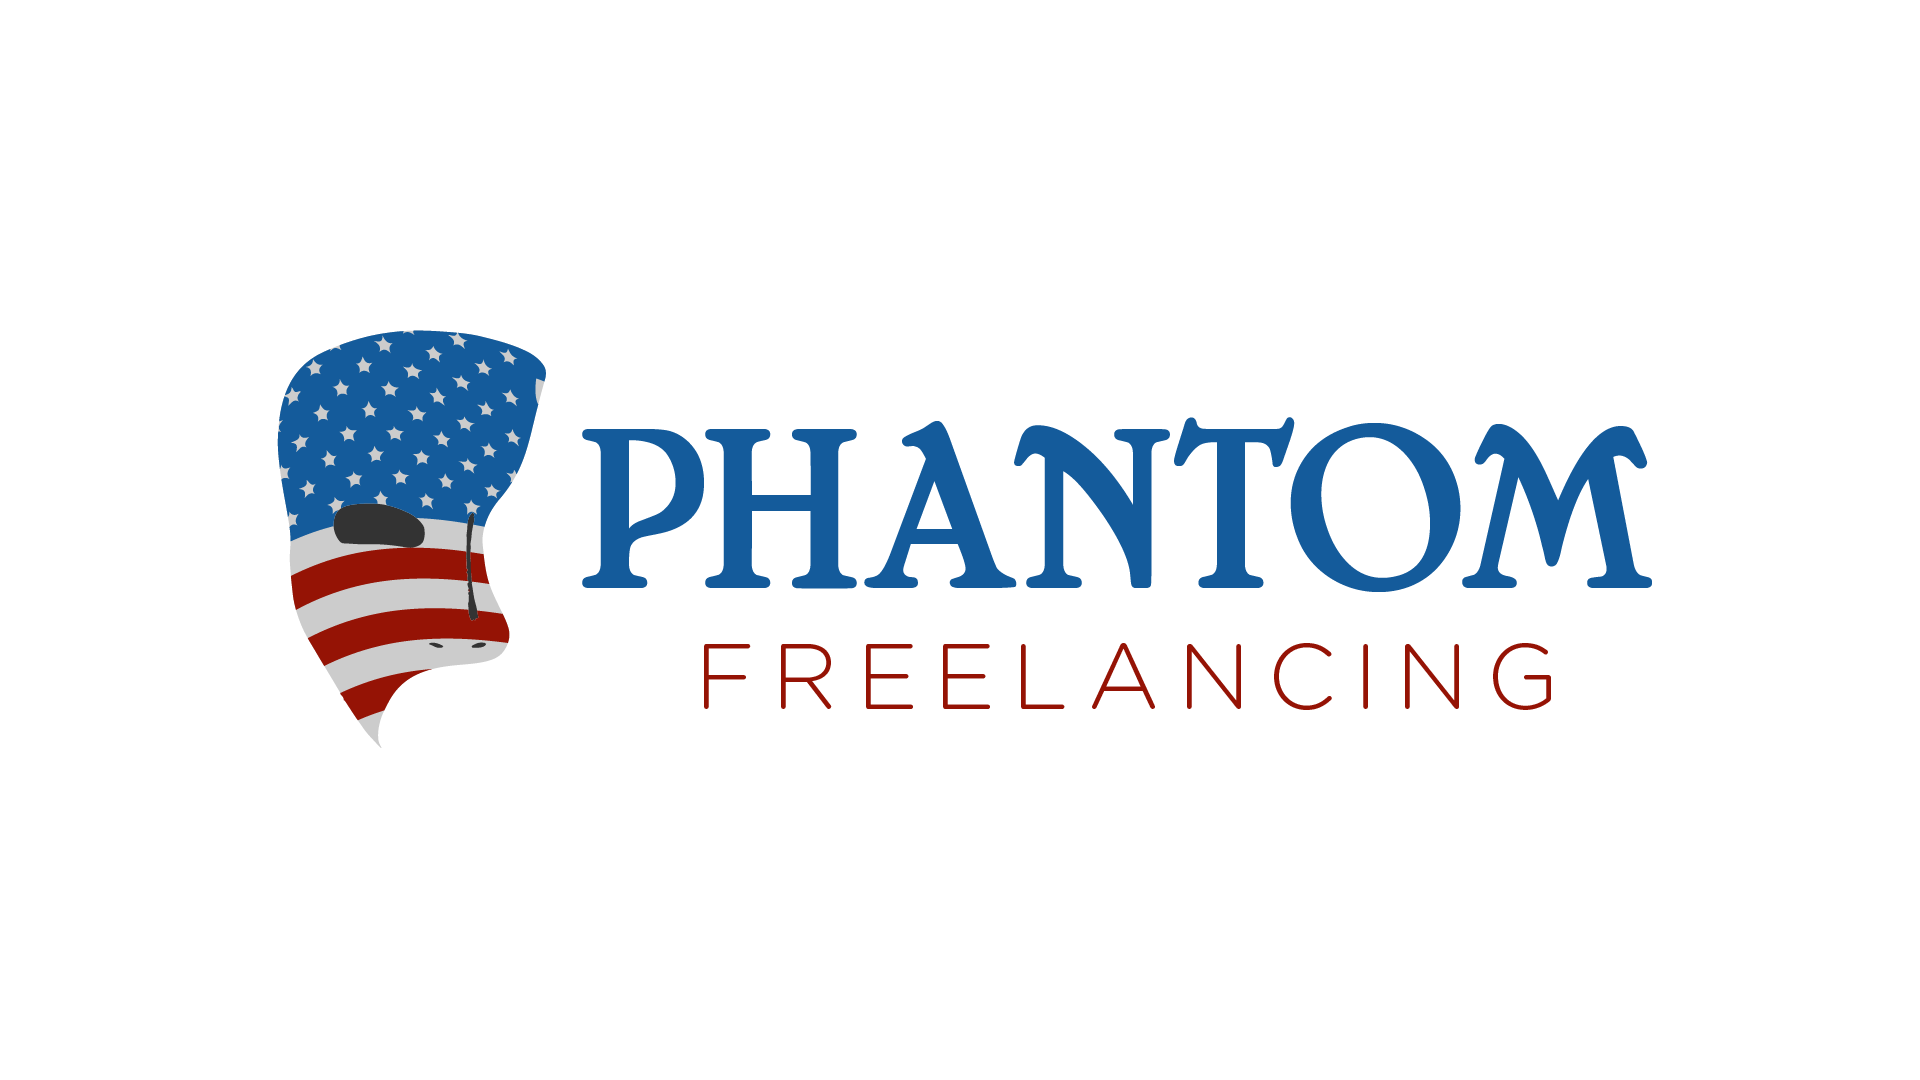 Phantom Freelancing